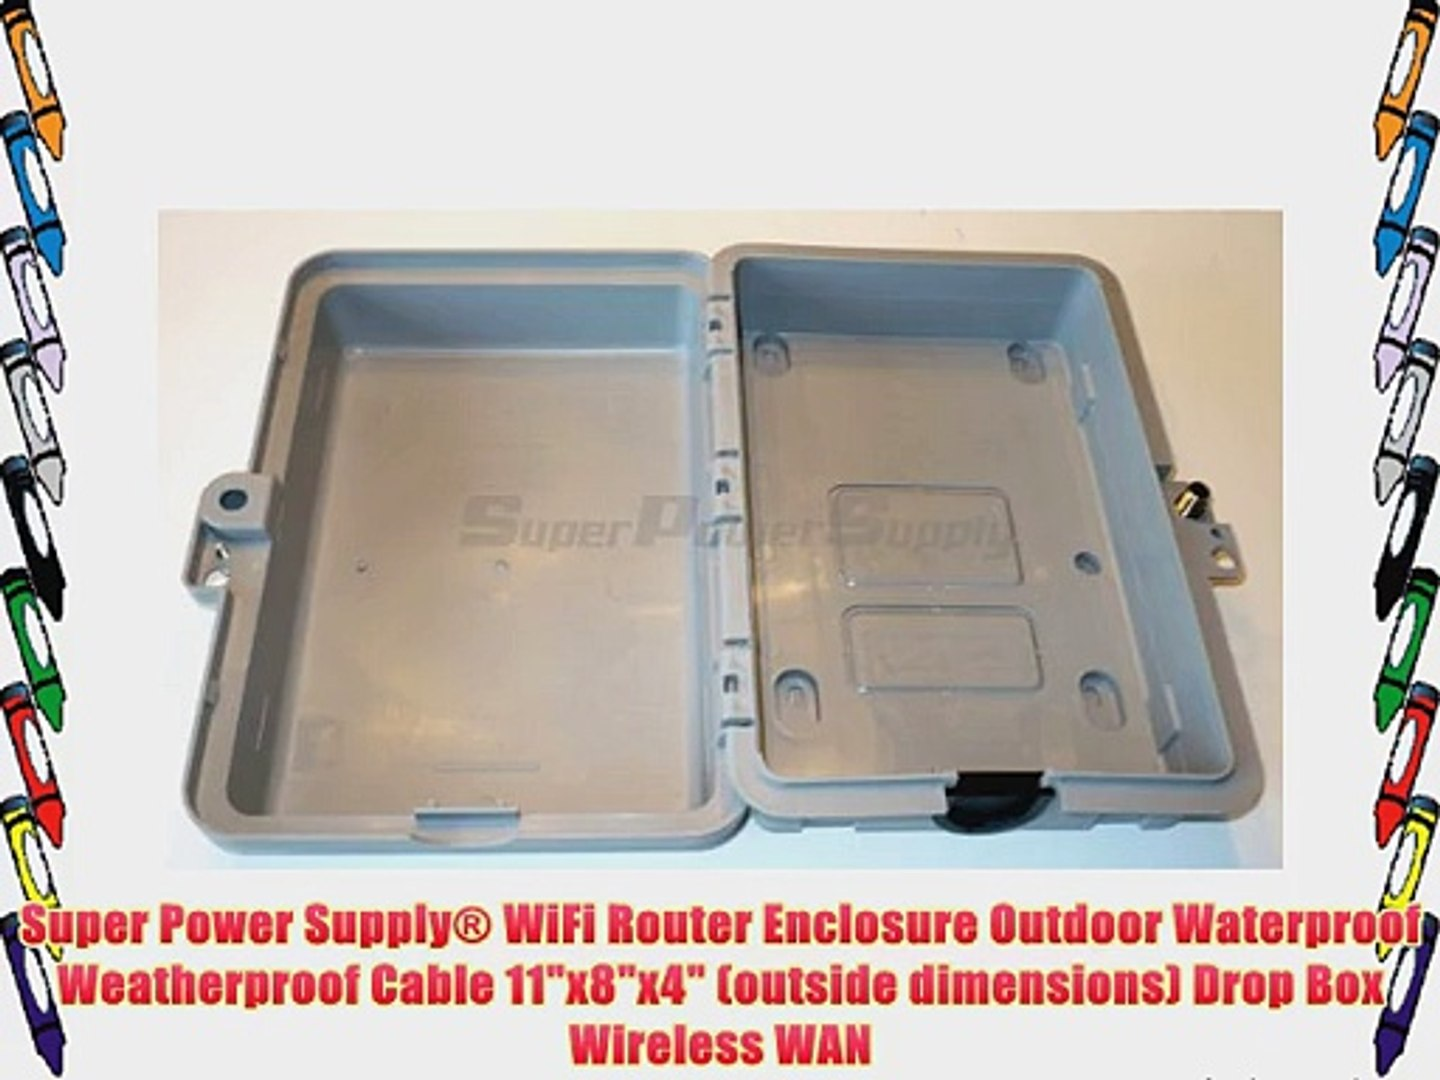 Super Power Supply? WiFi Router Enclosure Outdoor Waterproof Weatherproof  Cable 11x8x4 (outside